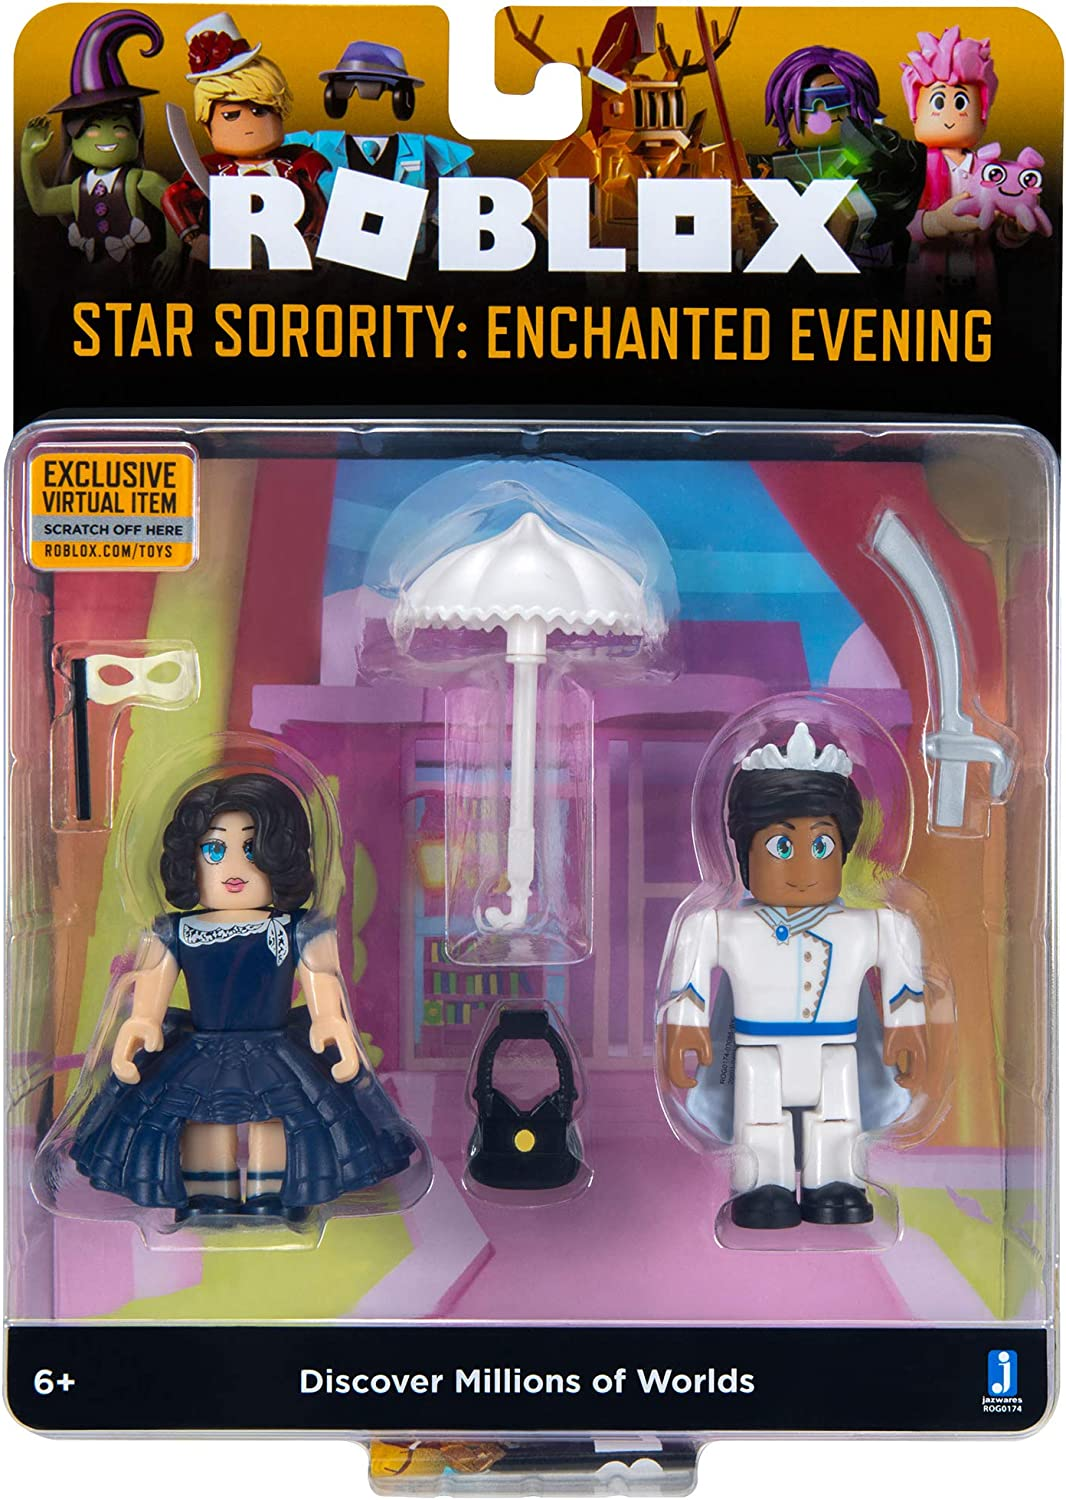 Robloxcom Dance Your Blox Off Www Roblox Free Accounts Amazon Com Roblox Celebrity Collection Star Sorority Enchanted Evening Game Pack Includes Exclusive Virtual Item Toys Games